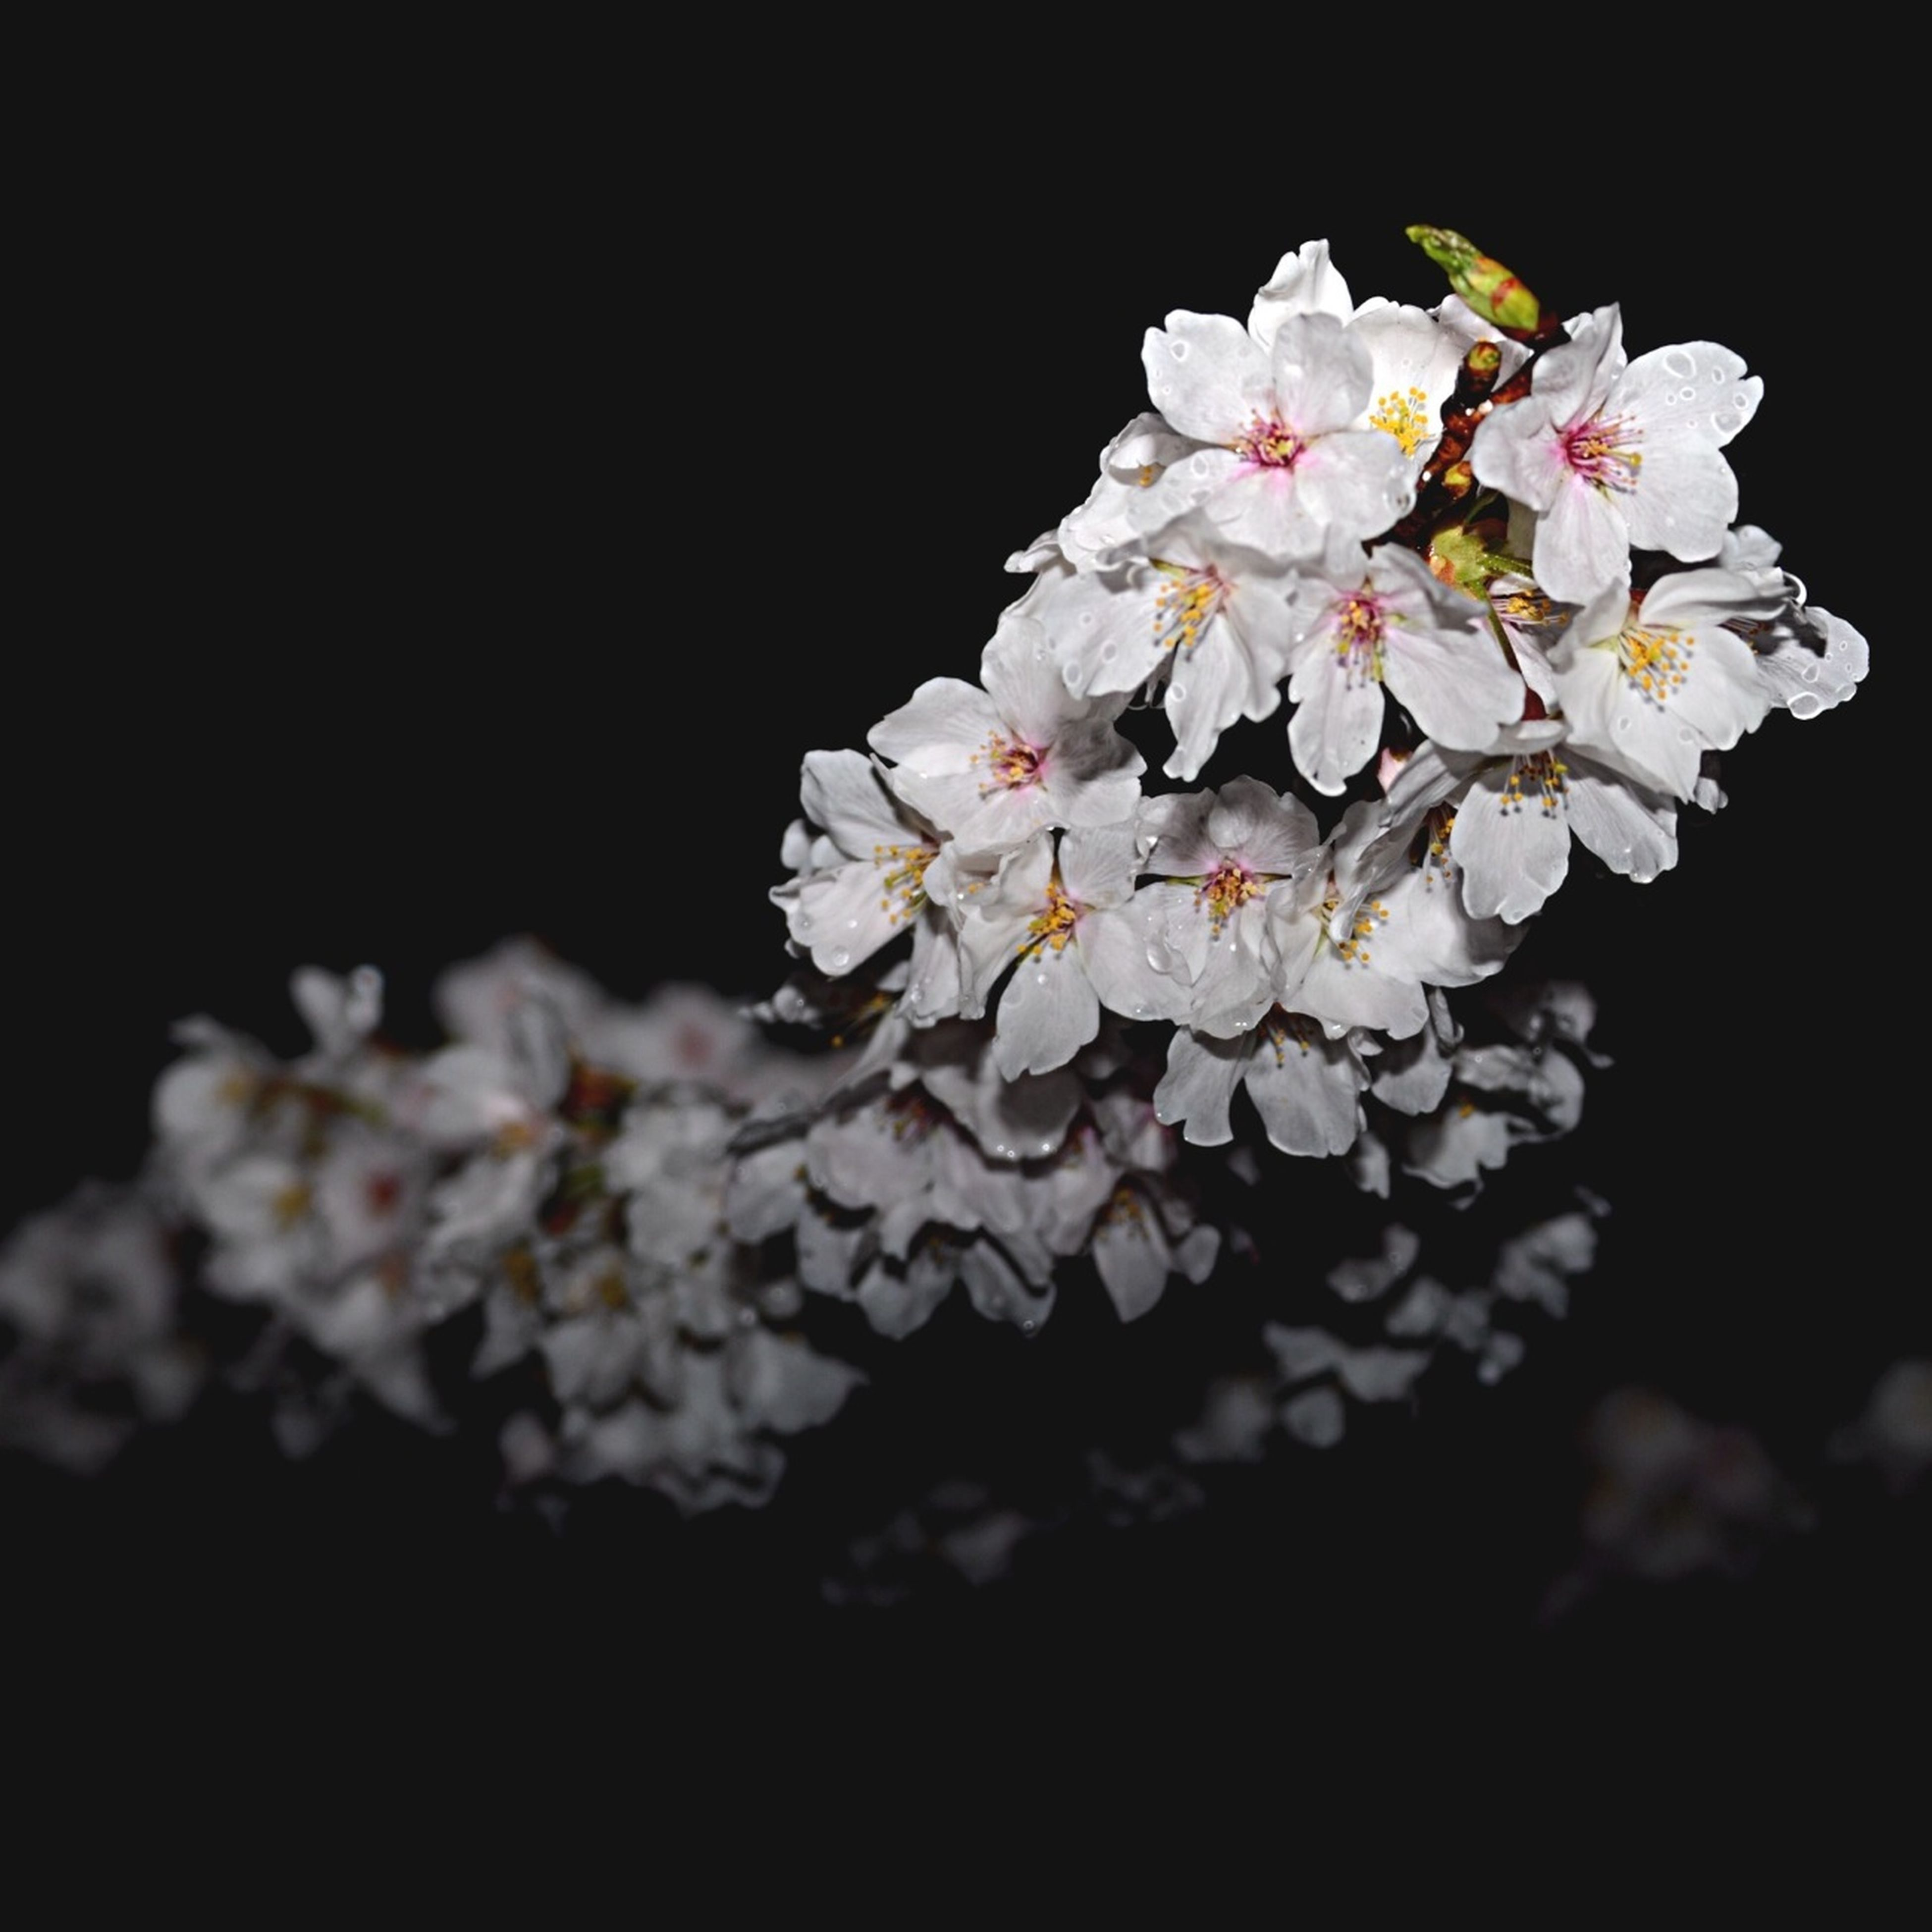 flower, freshness, fragility, petal, white color, flower head, beauty in nature, blossom, growth, cherry blossom, blooming, nature, close-up, in bloom, pollen, focus on foreground, stamen, springtime, night, white